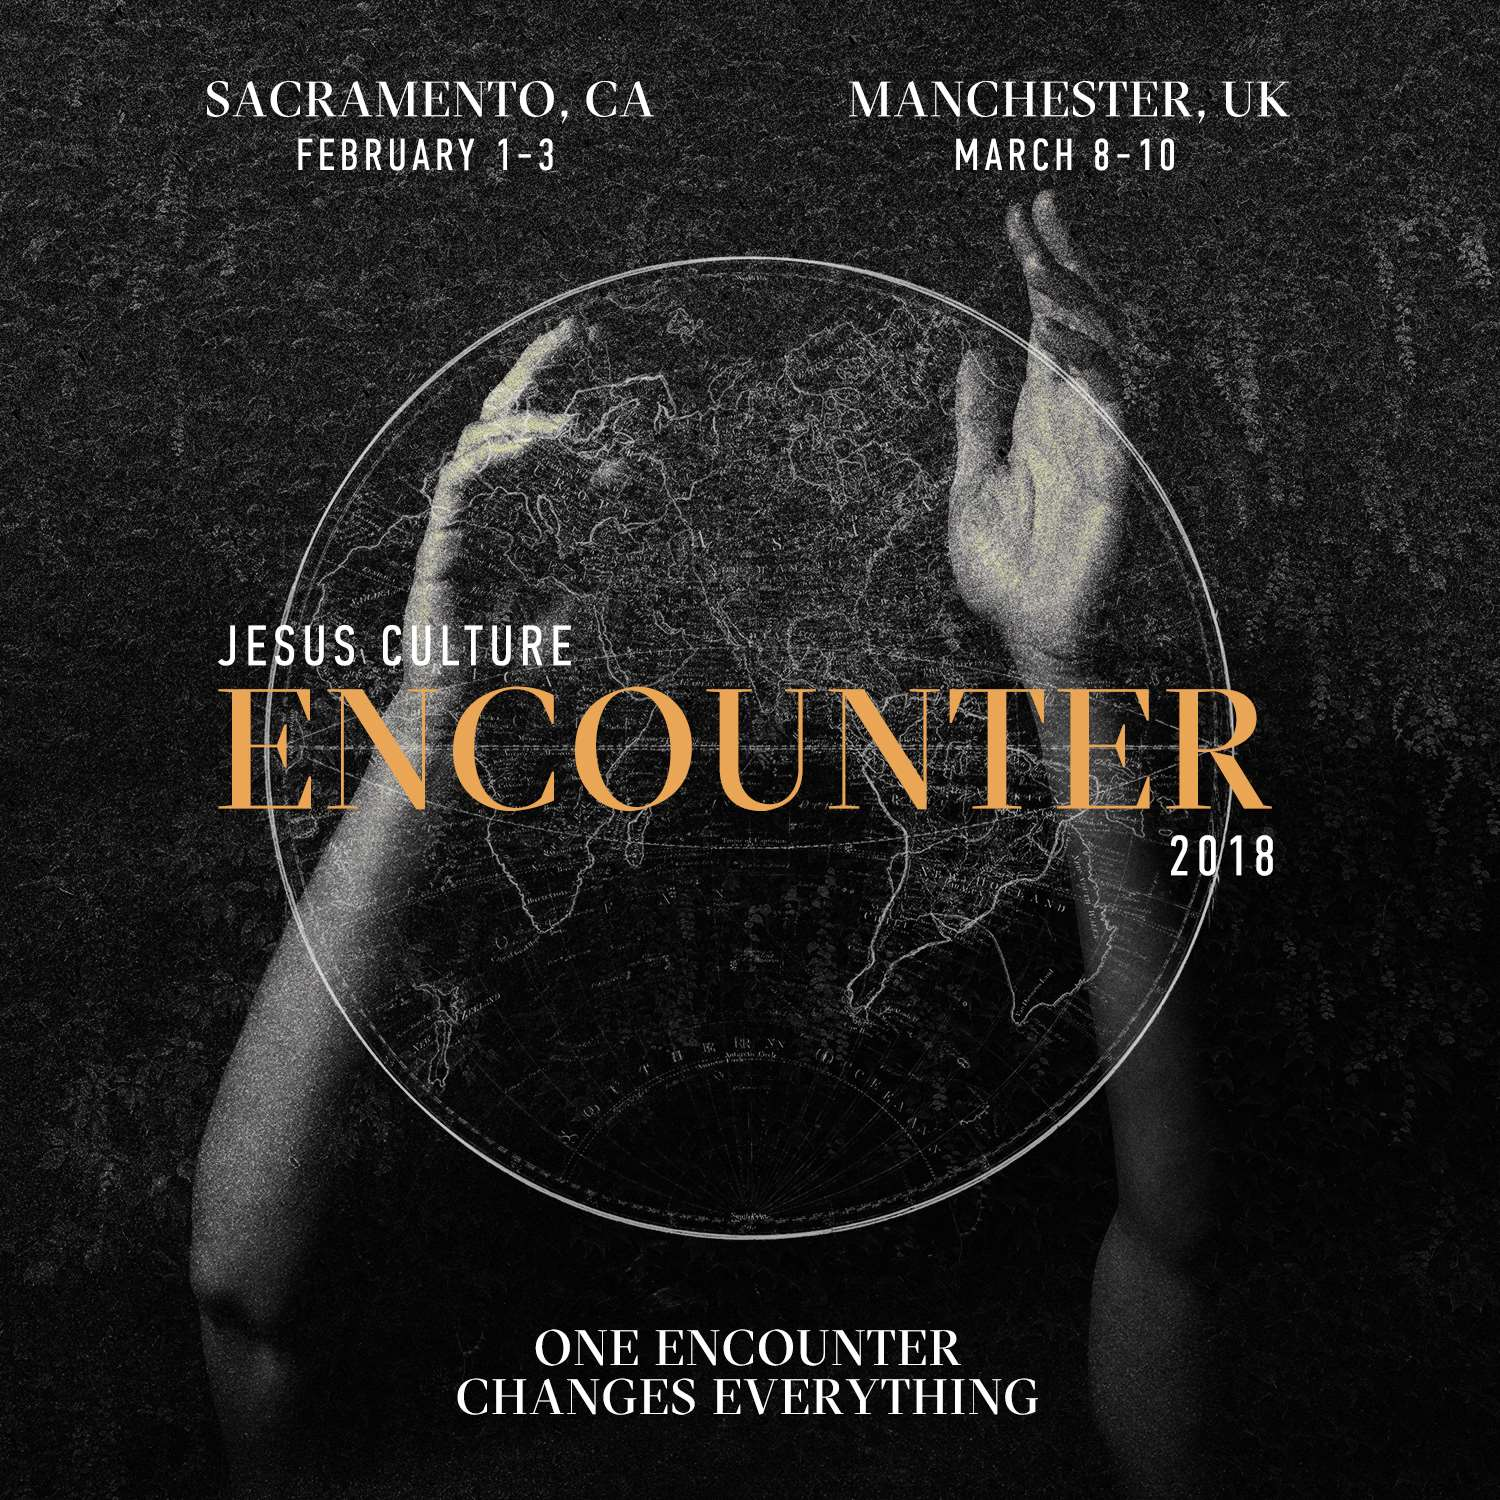 encounter-18-share.jpg